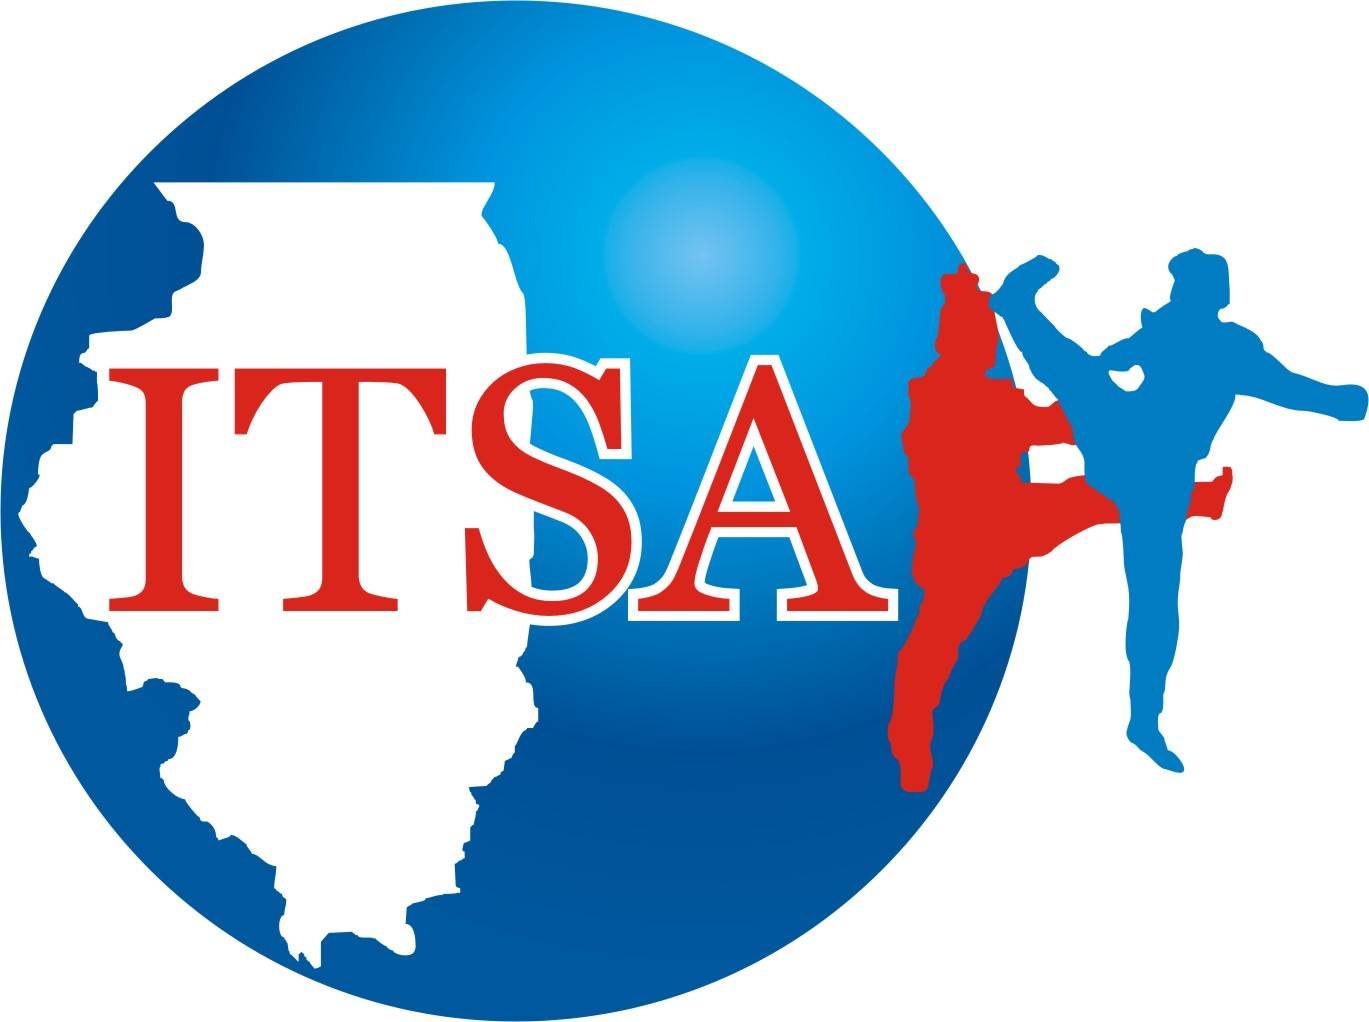 Illinois Taekwondo State Association